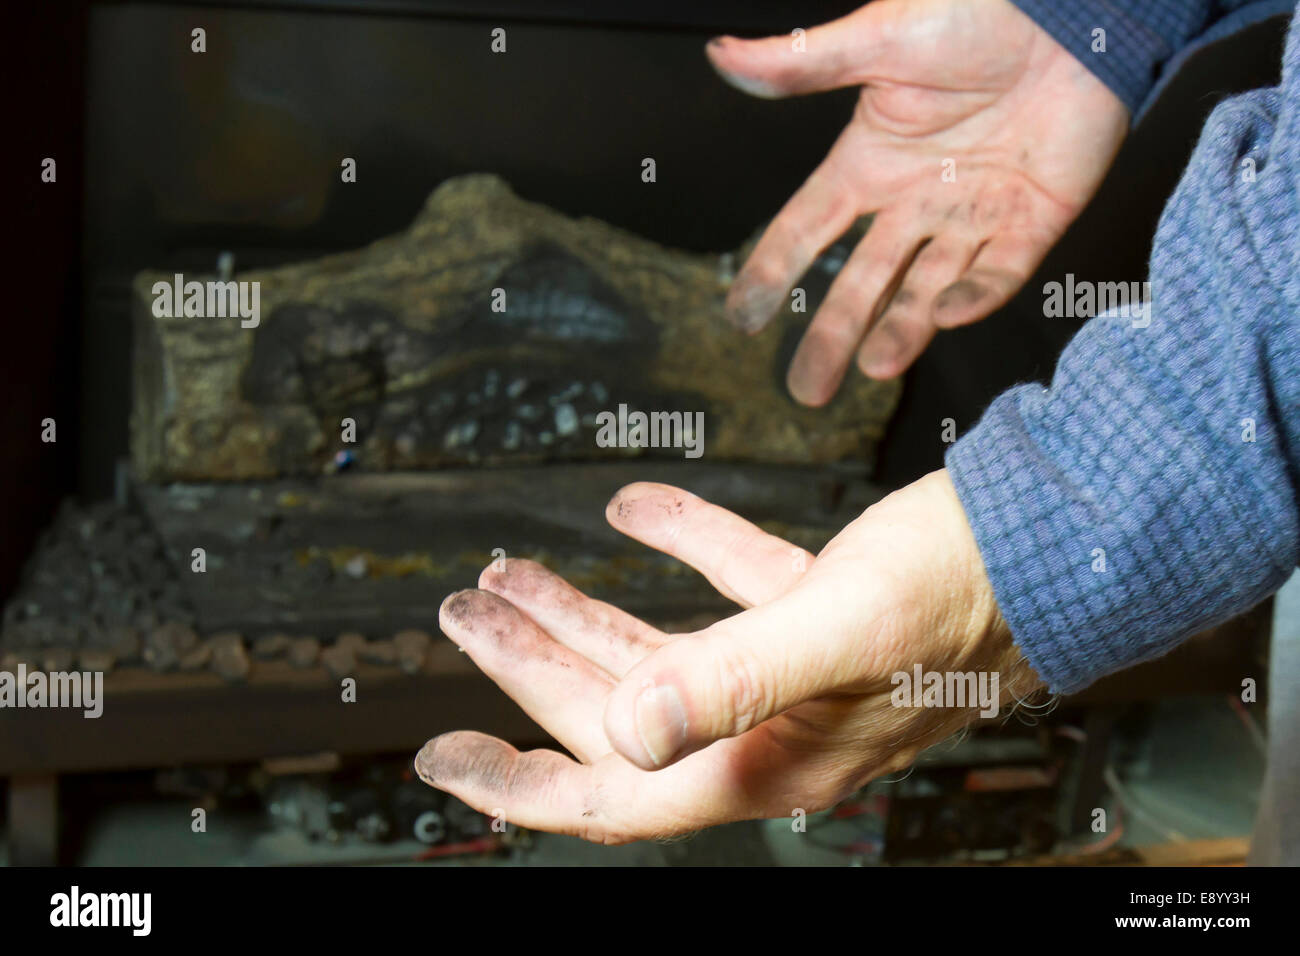 Diry man hands in front of gas fireplace - Stock Image